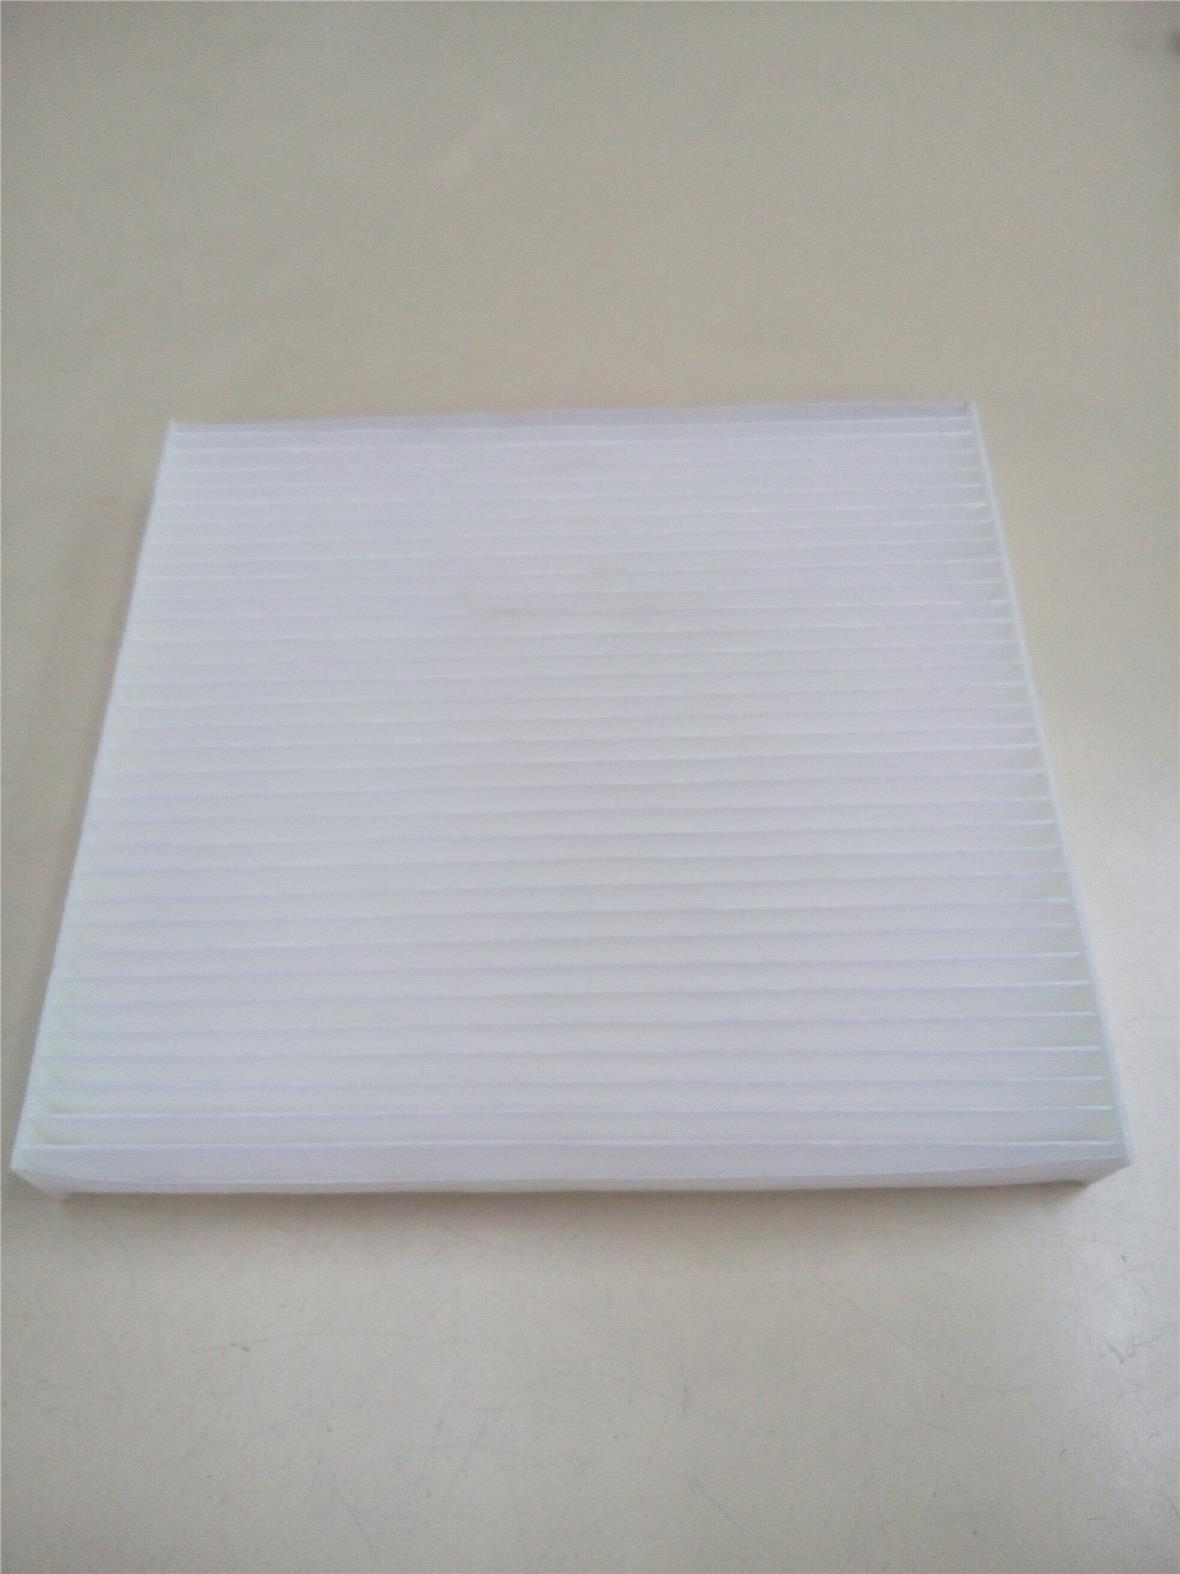 Mazda M6/CX7 Cabin Blower Air Filter